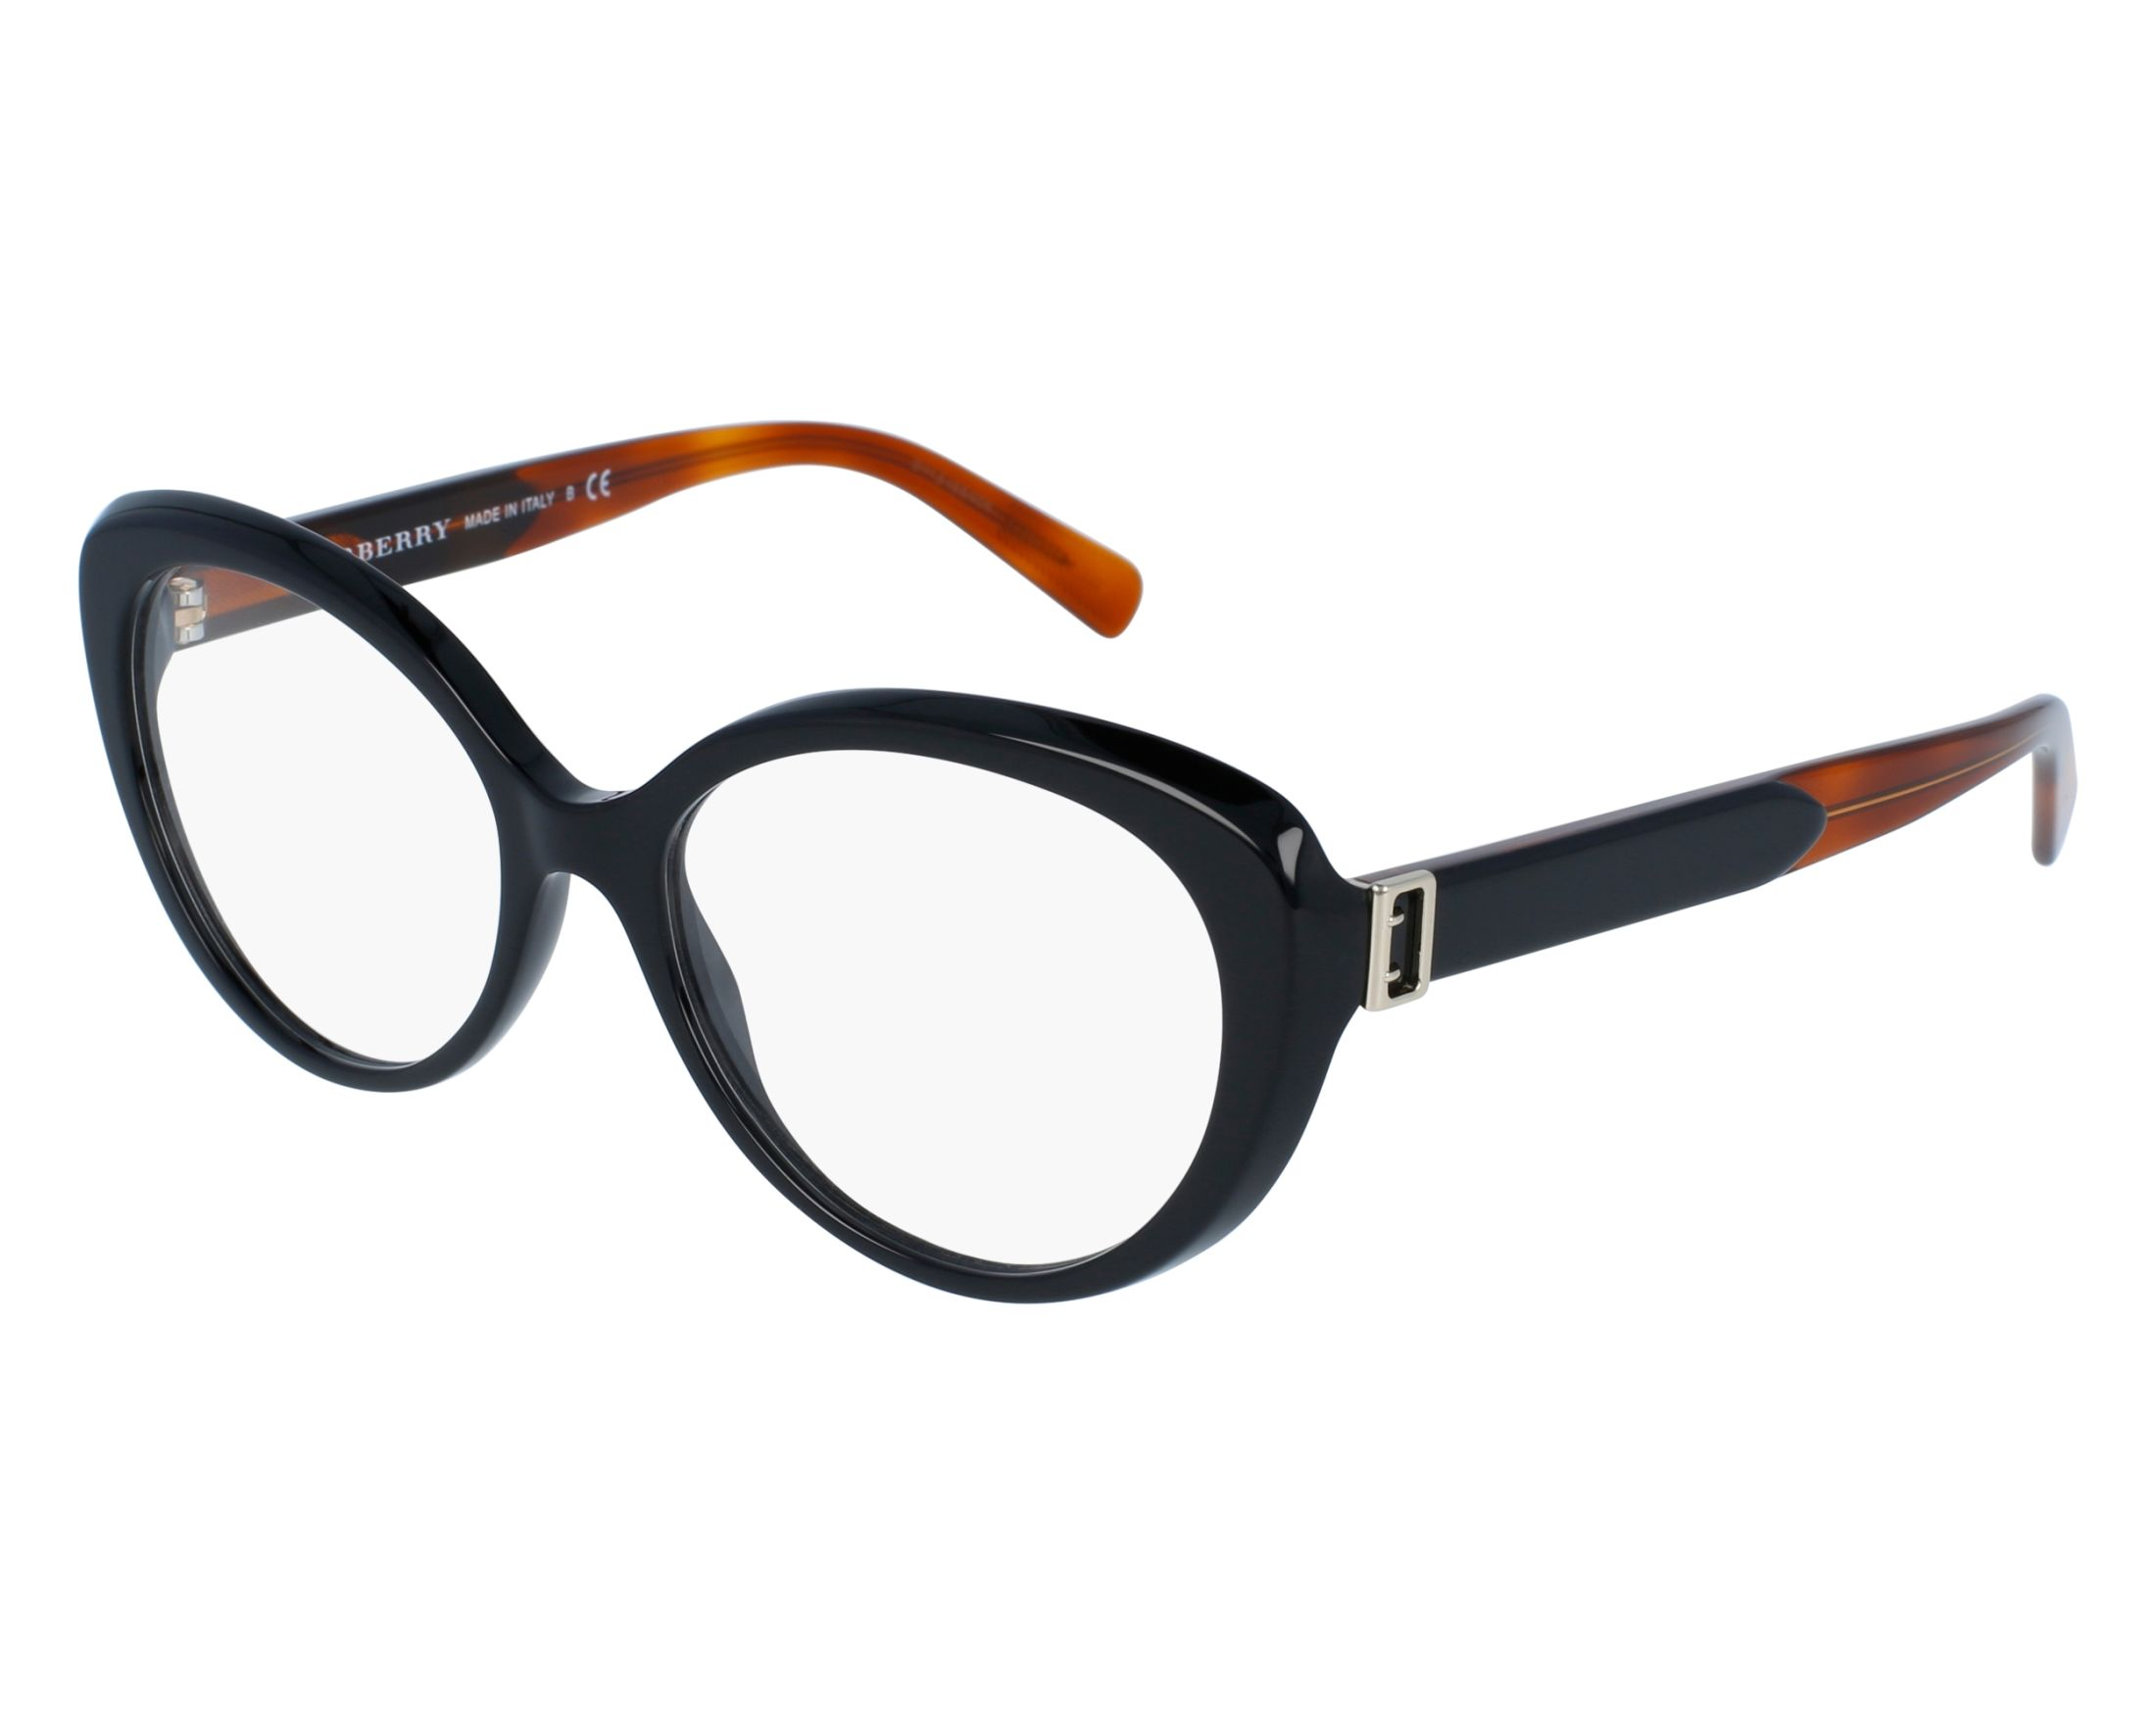 96771a1f55a eyeglasses Burberry BE-2251 3637 53-16 Black Brown front view